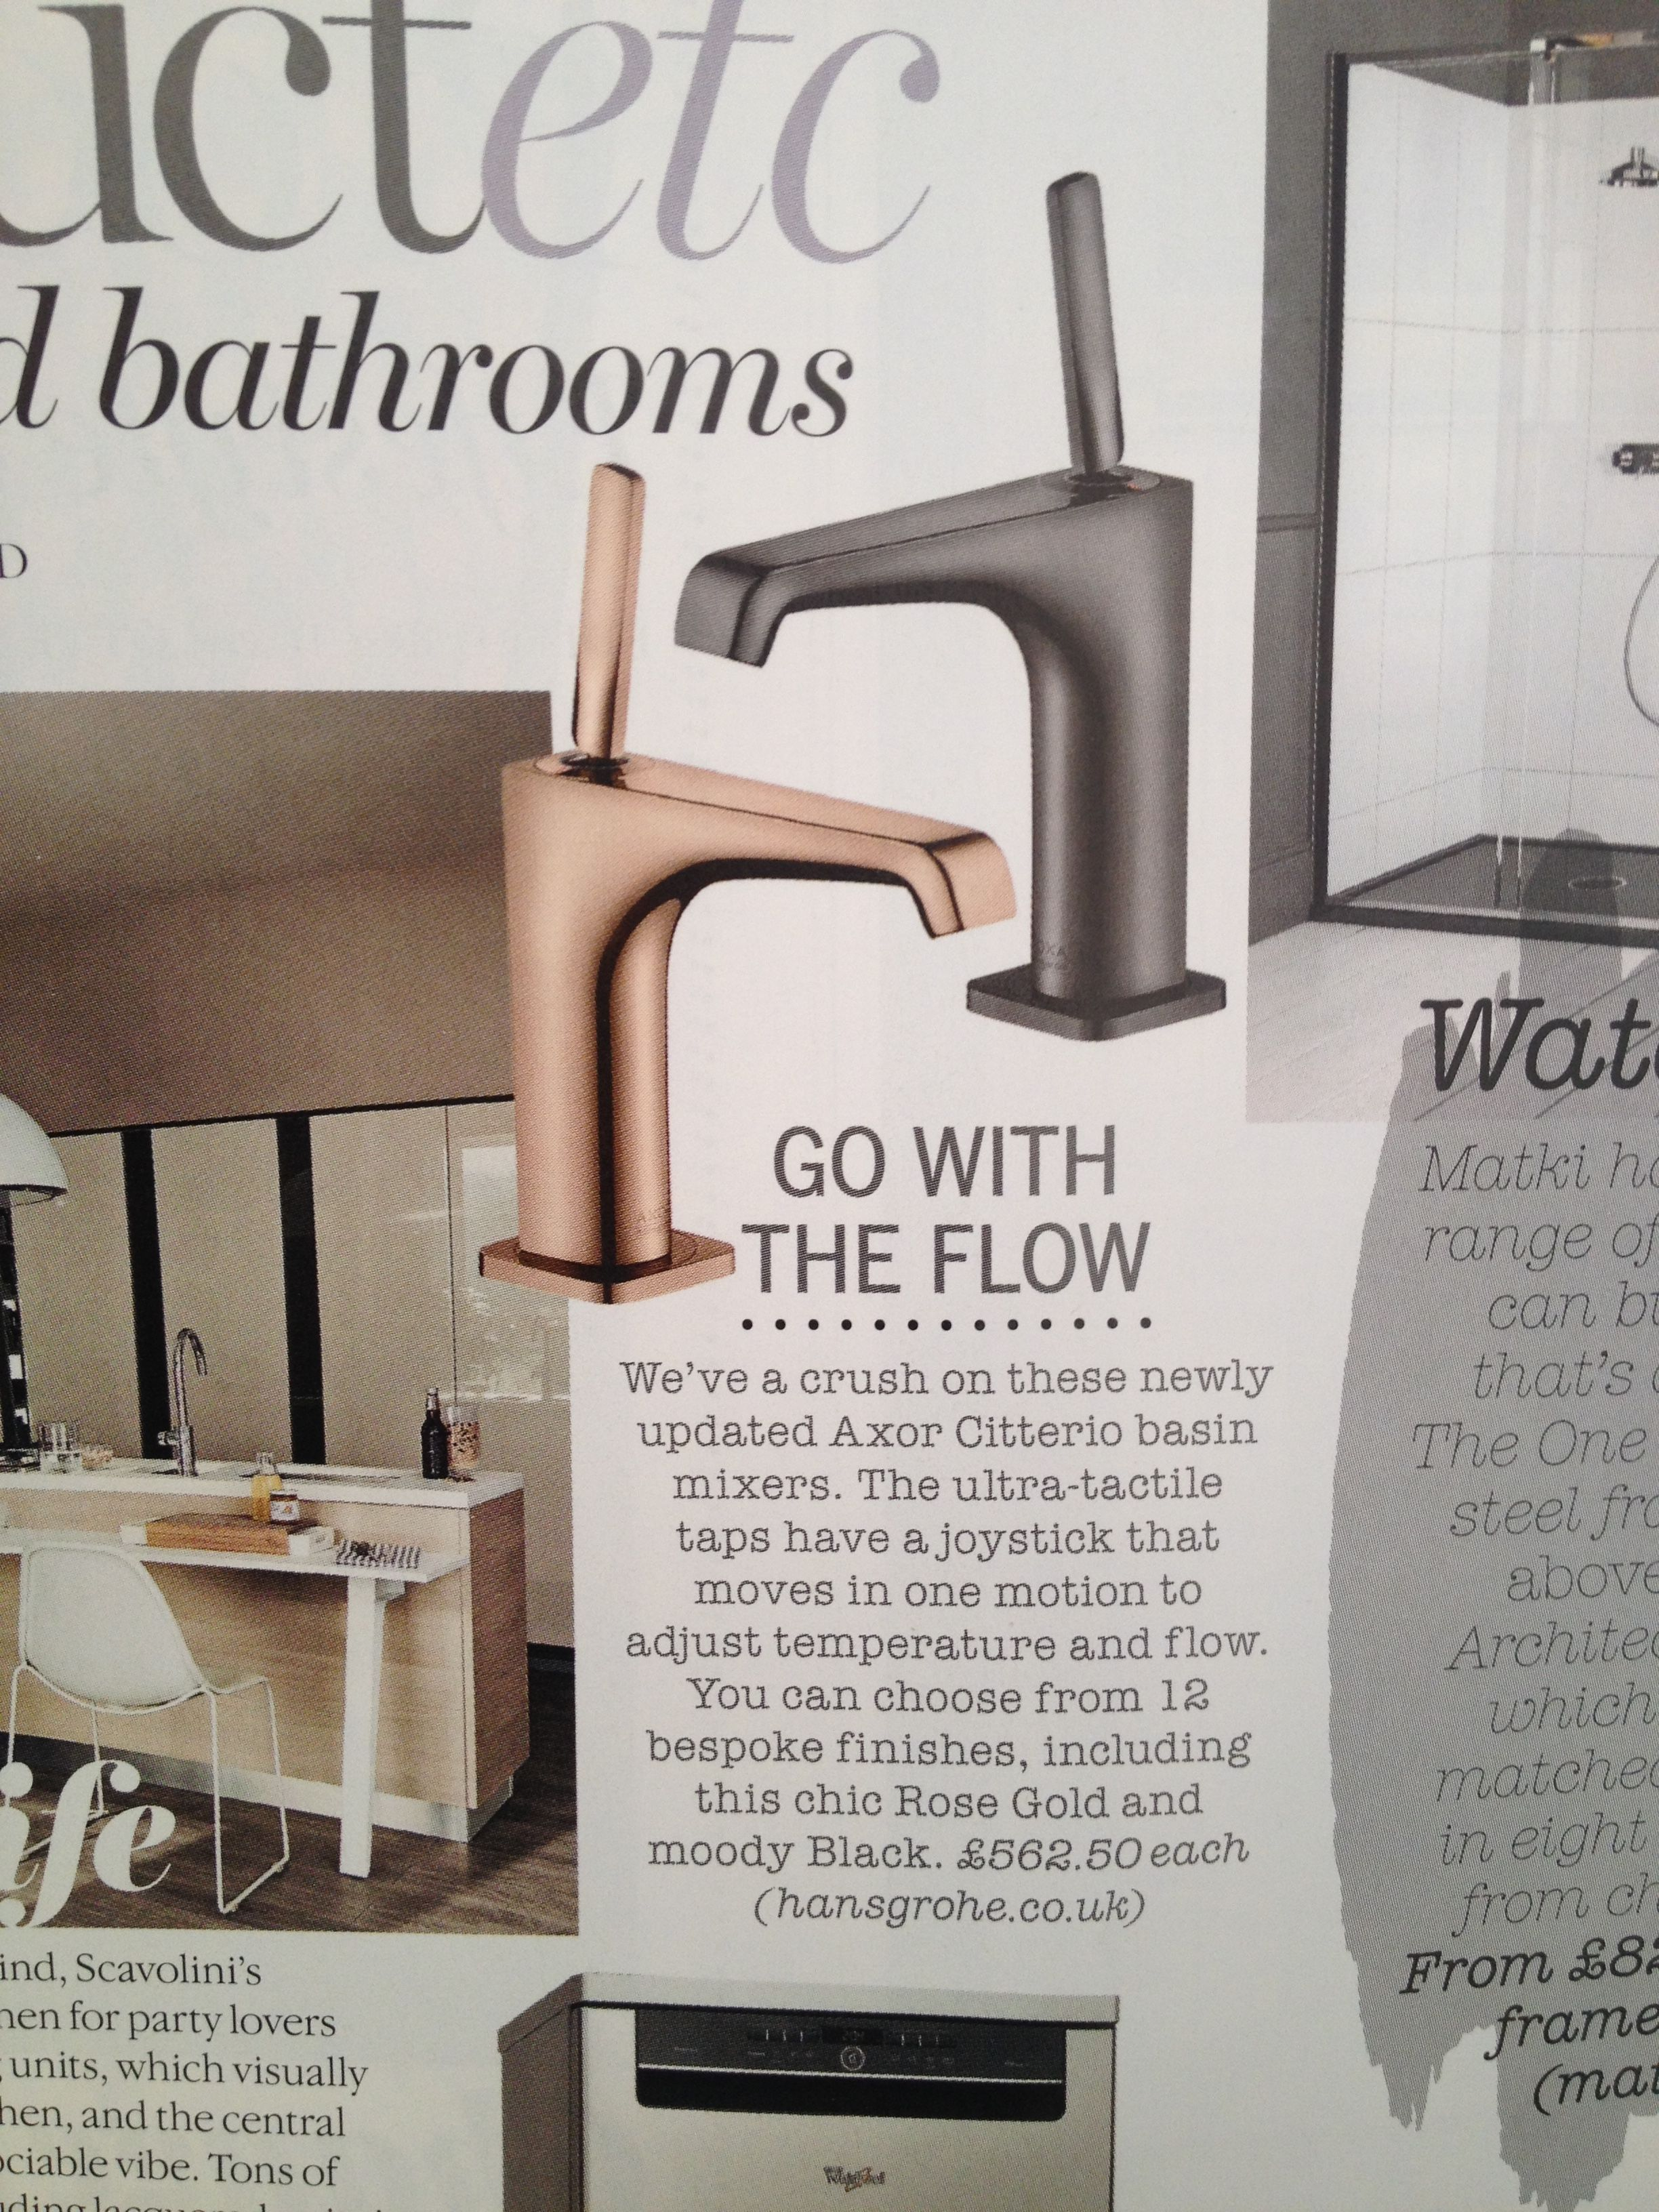 excellent rose gold mixer tap by hansgrohe.co.uk. Only £562 each ...